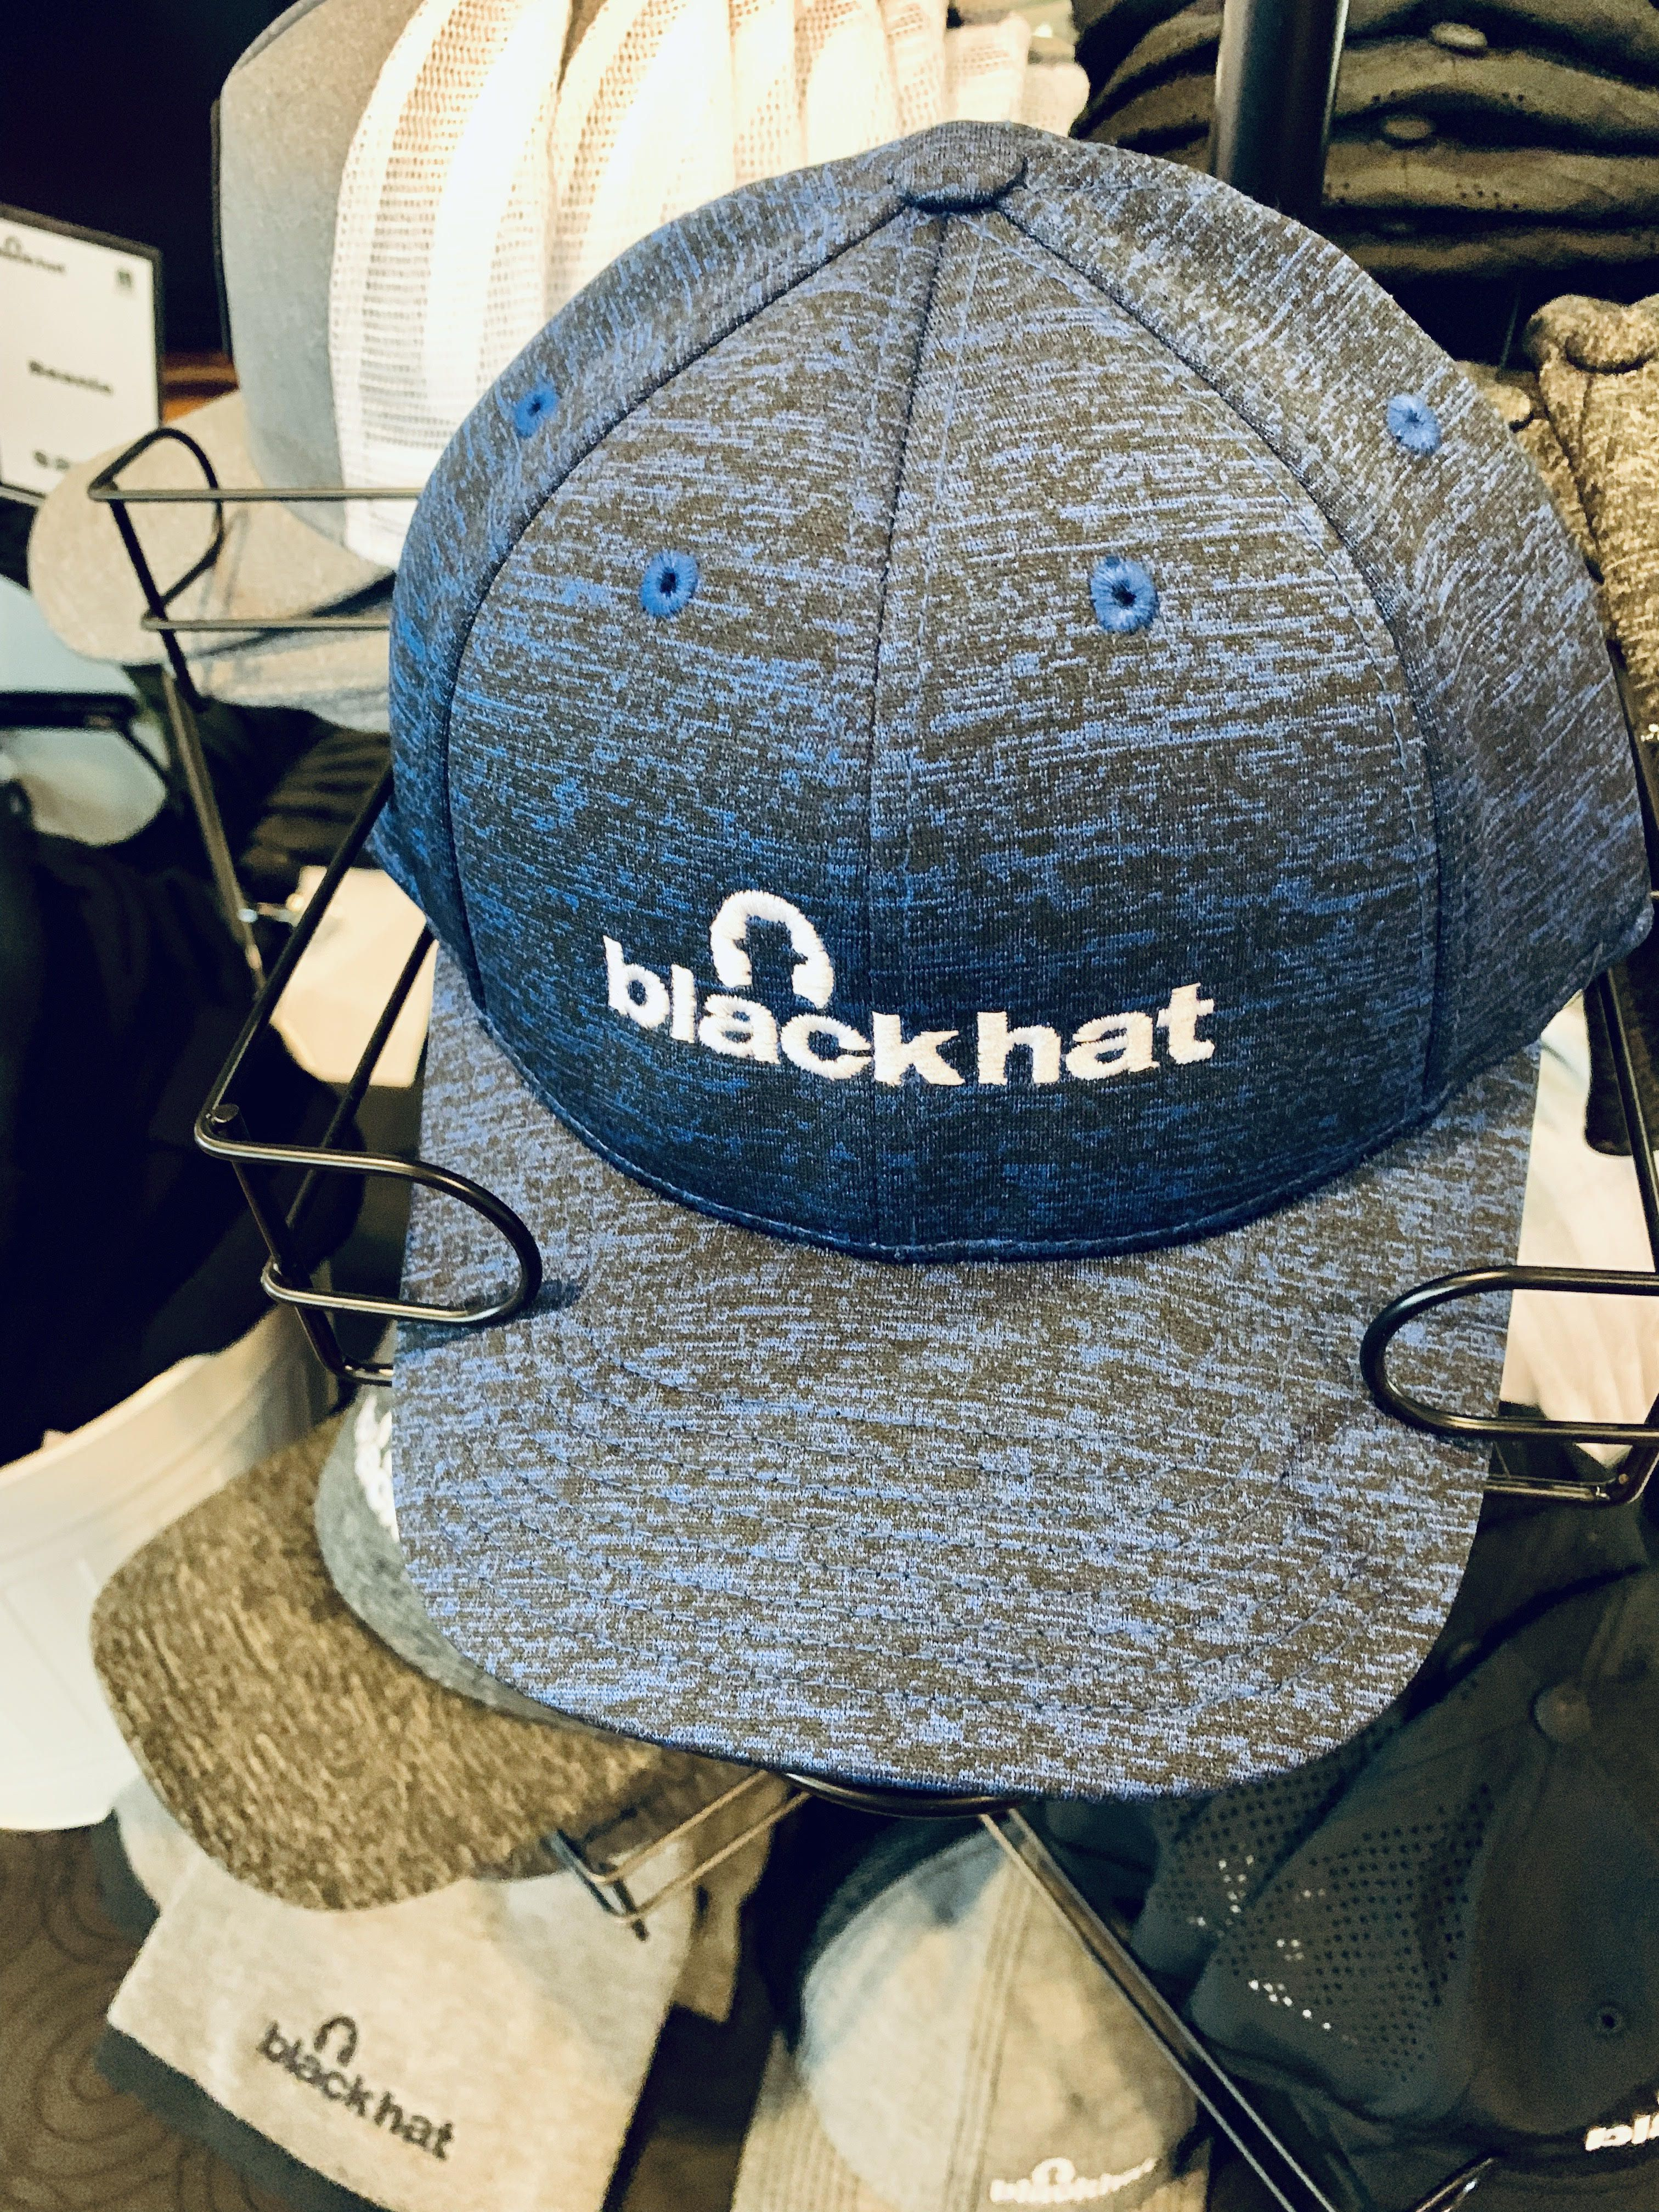 A blue hat that says Black Hat